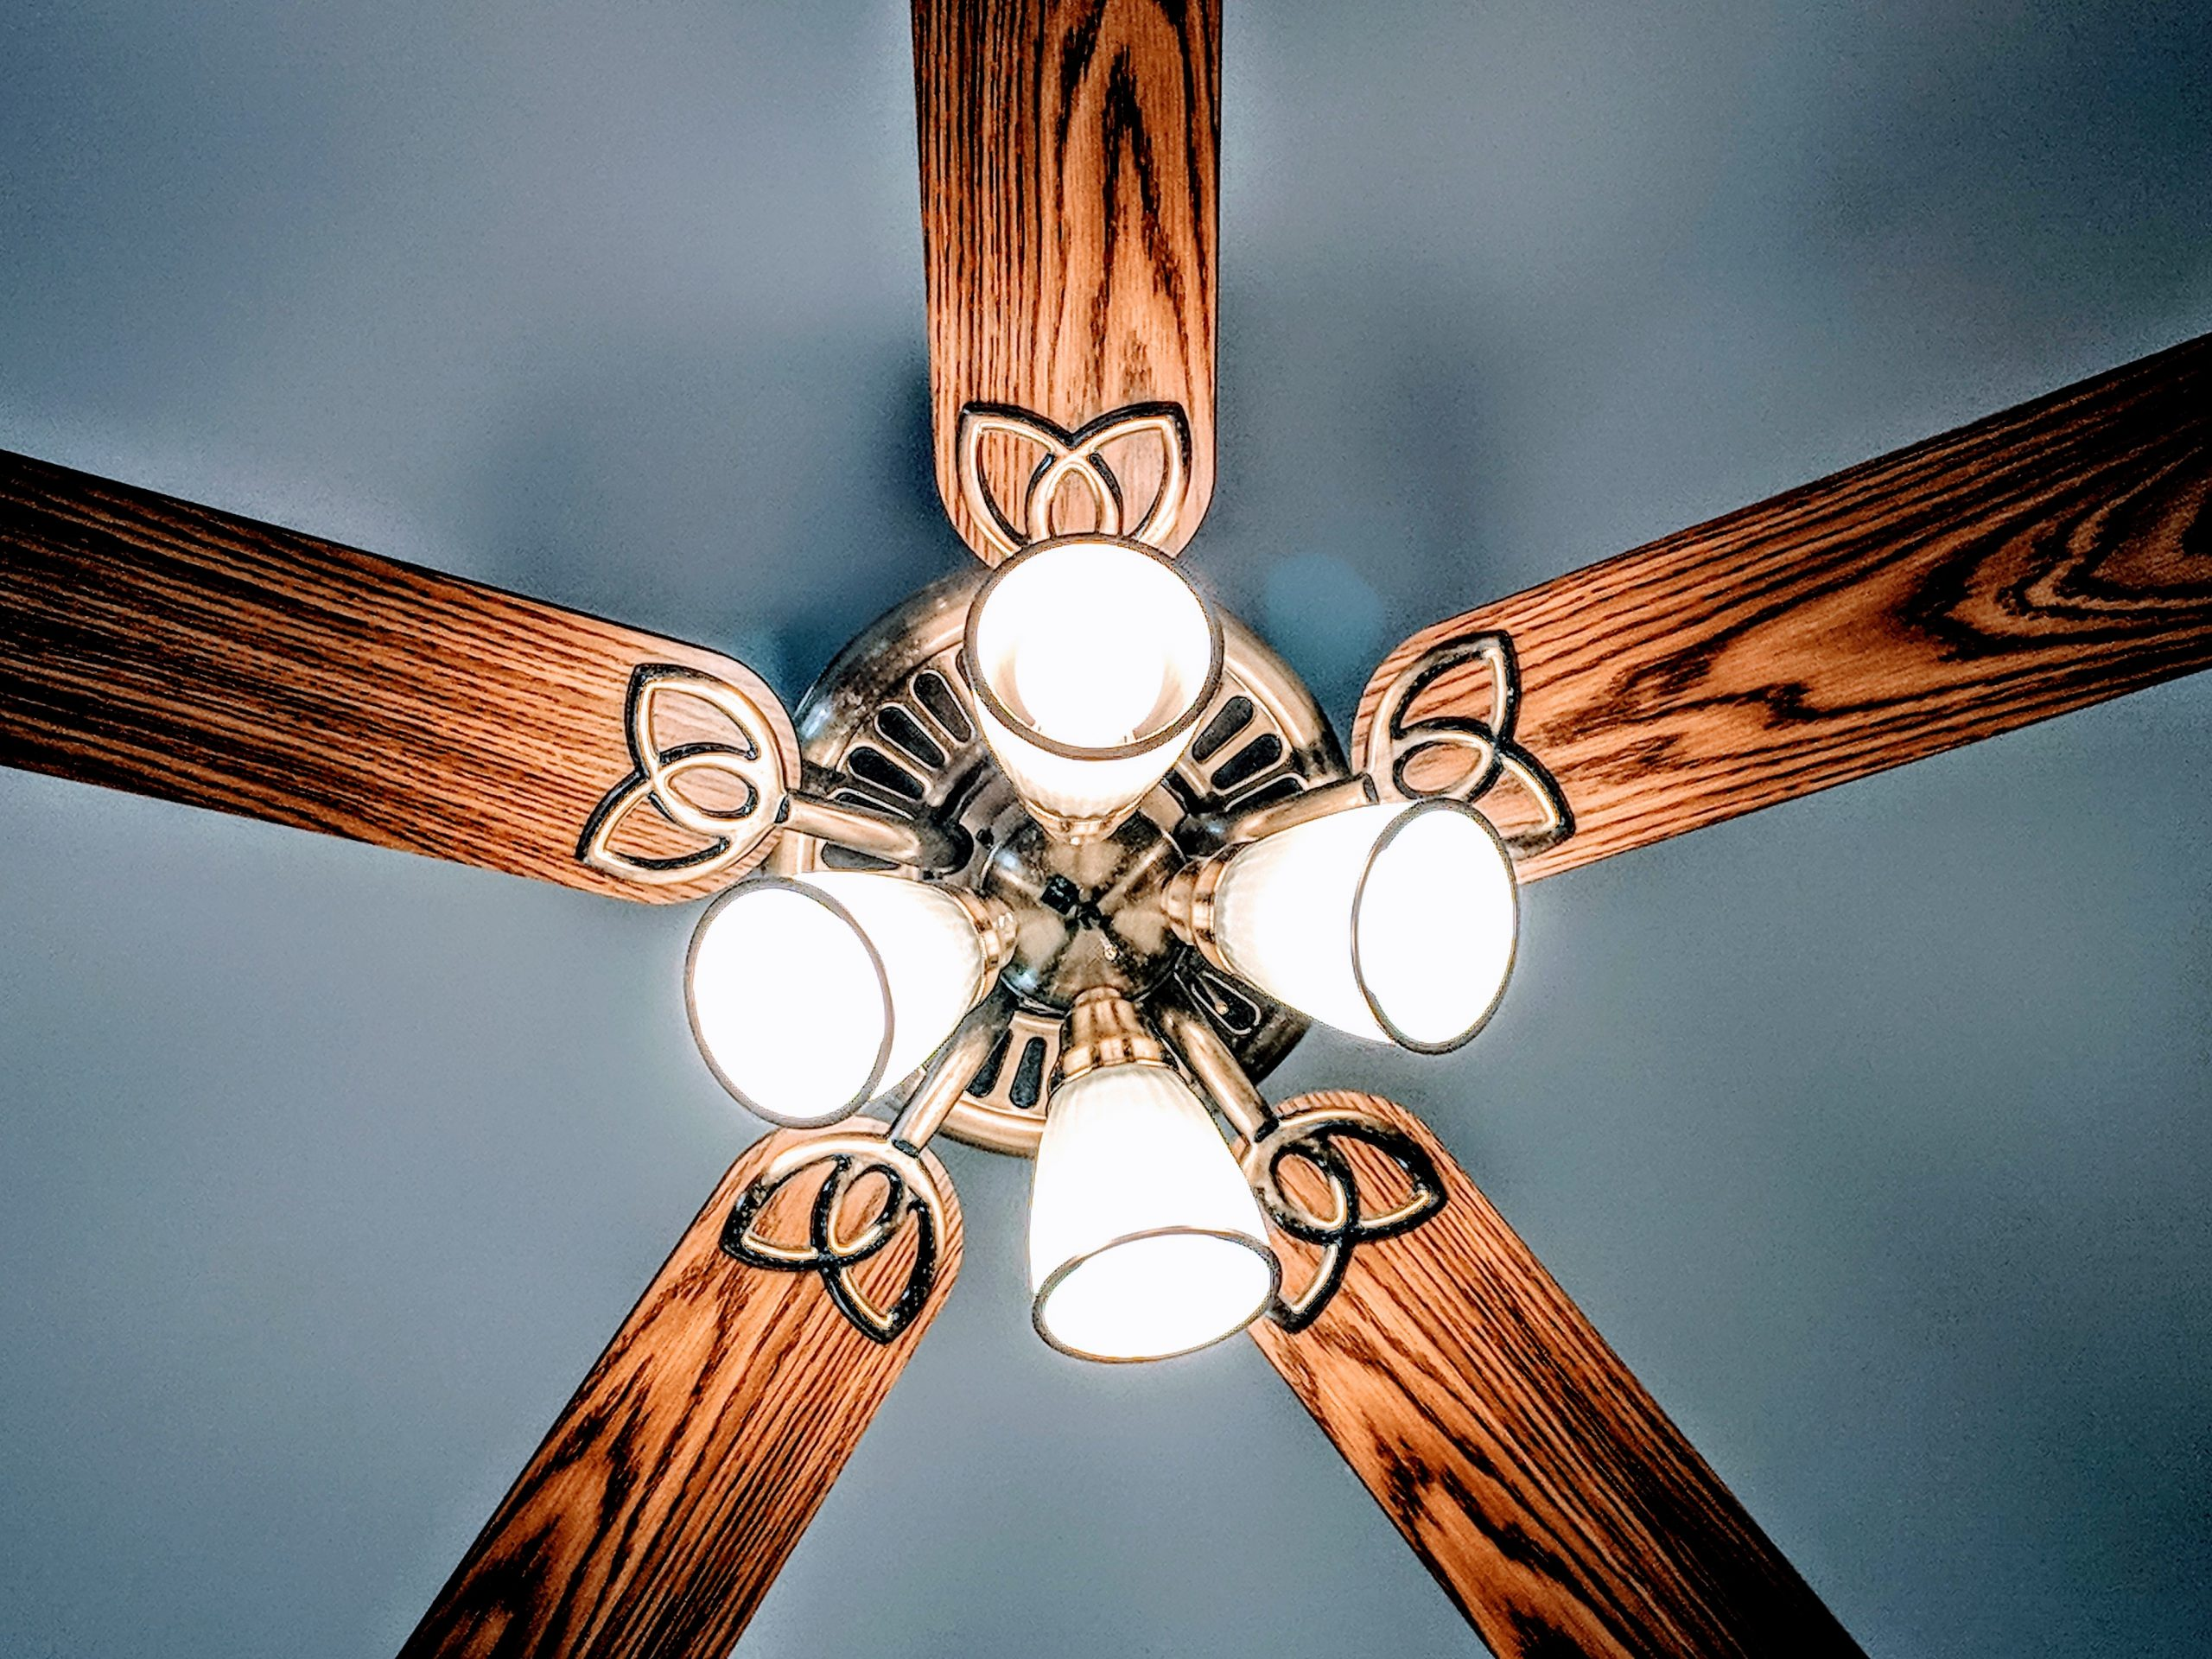 How to Easily Clean Ceiling Fans